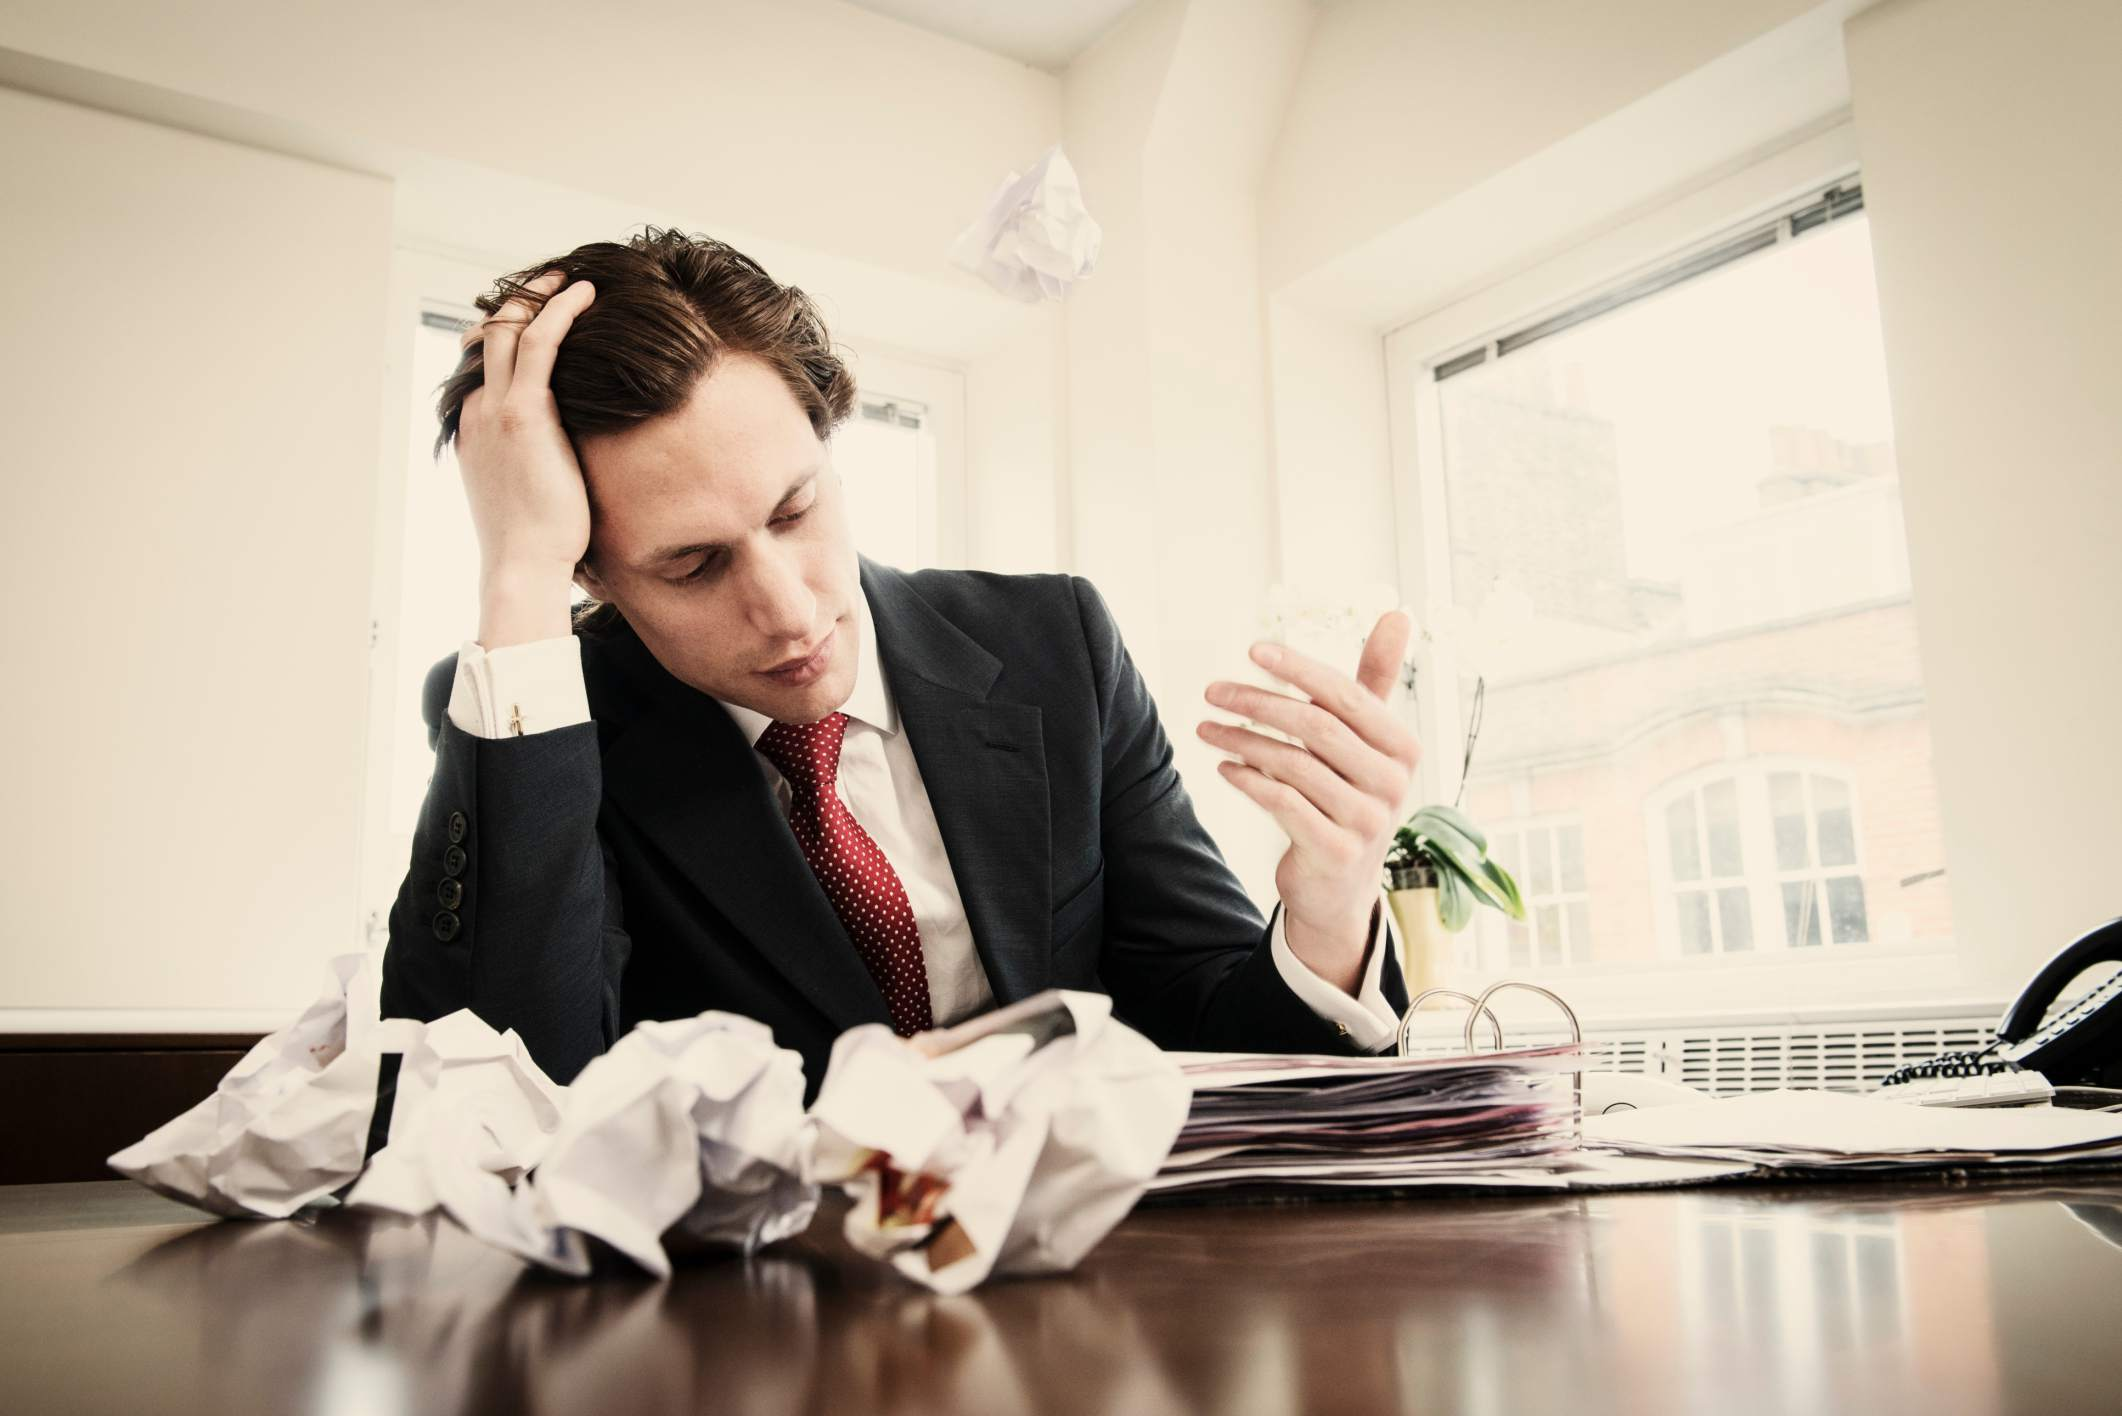 An office worker surrounded by a binder and crumpled paper